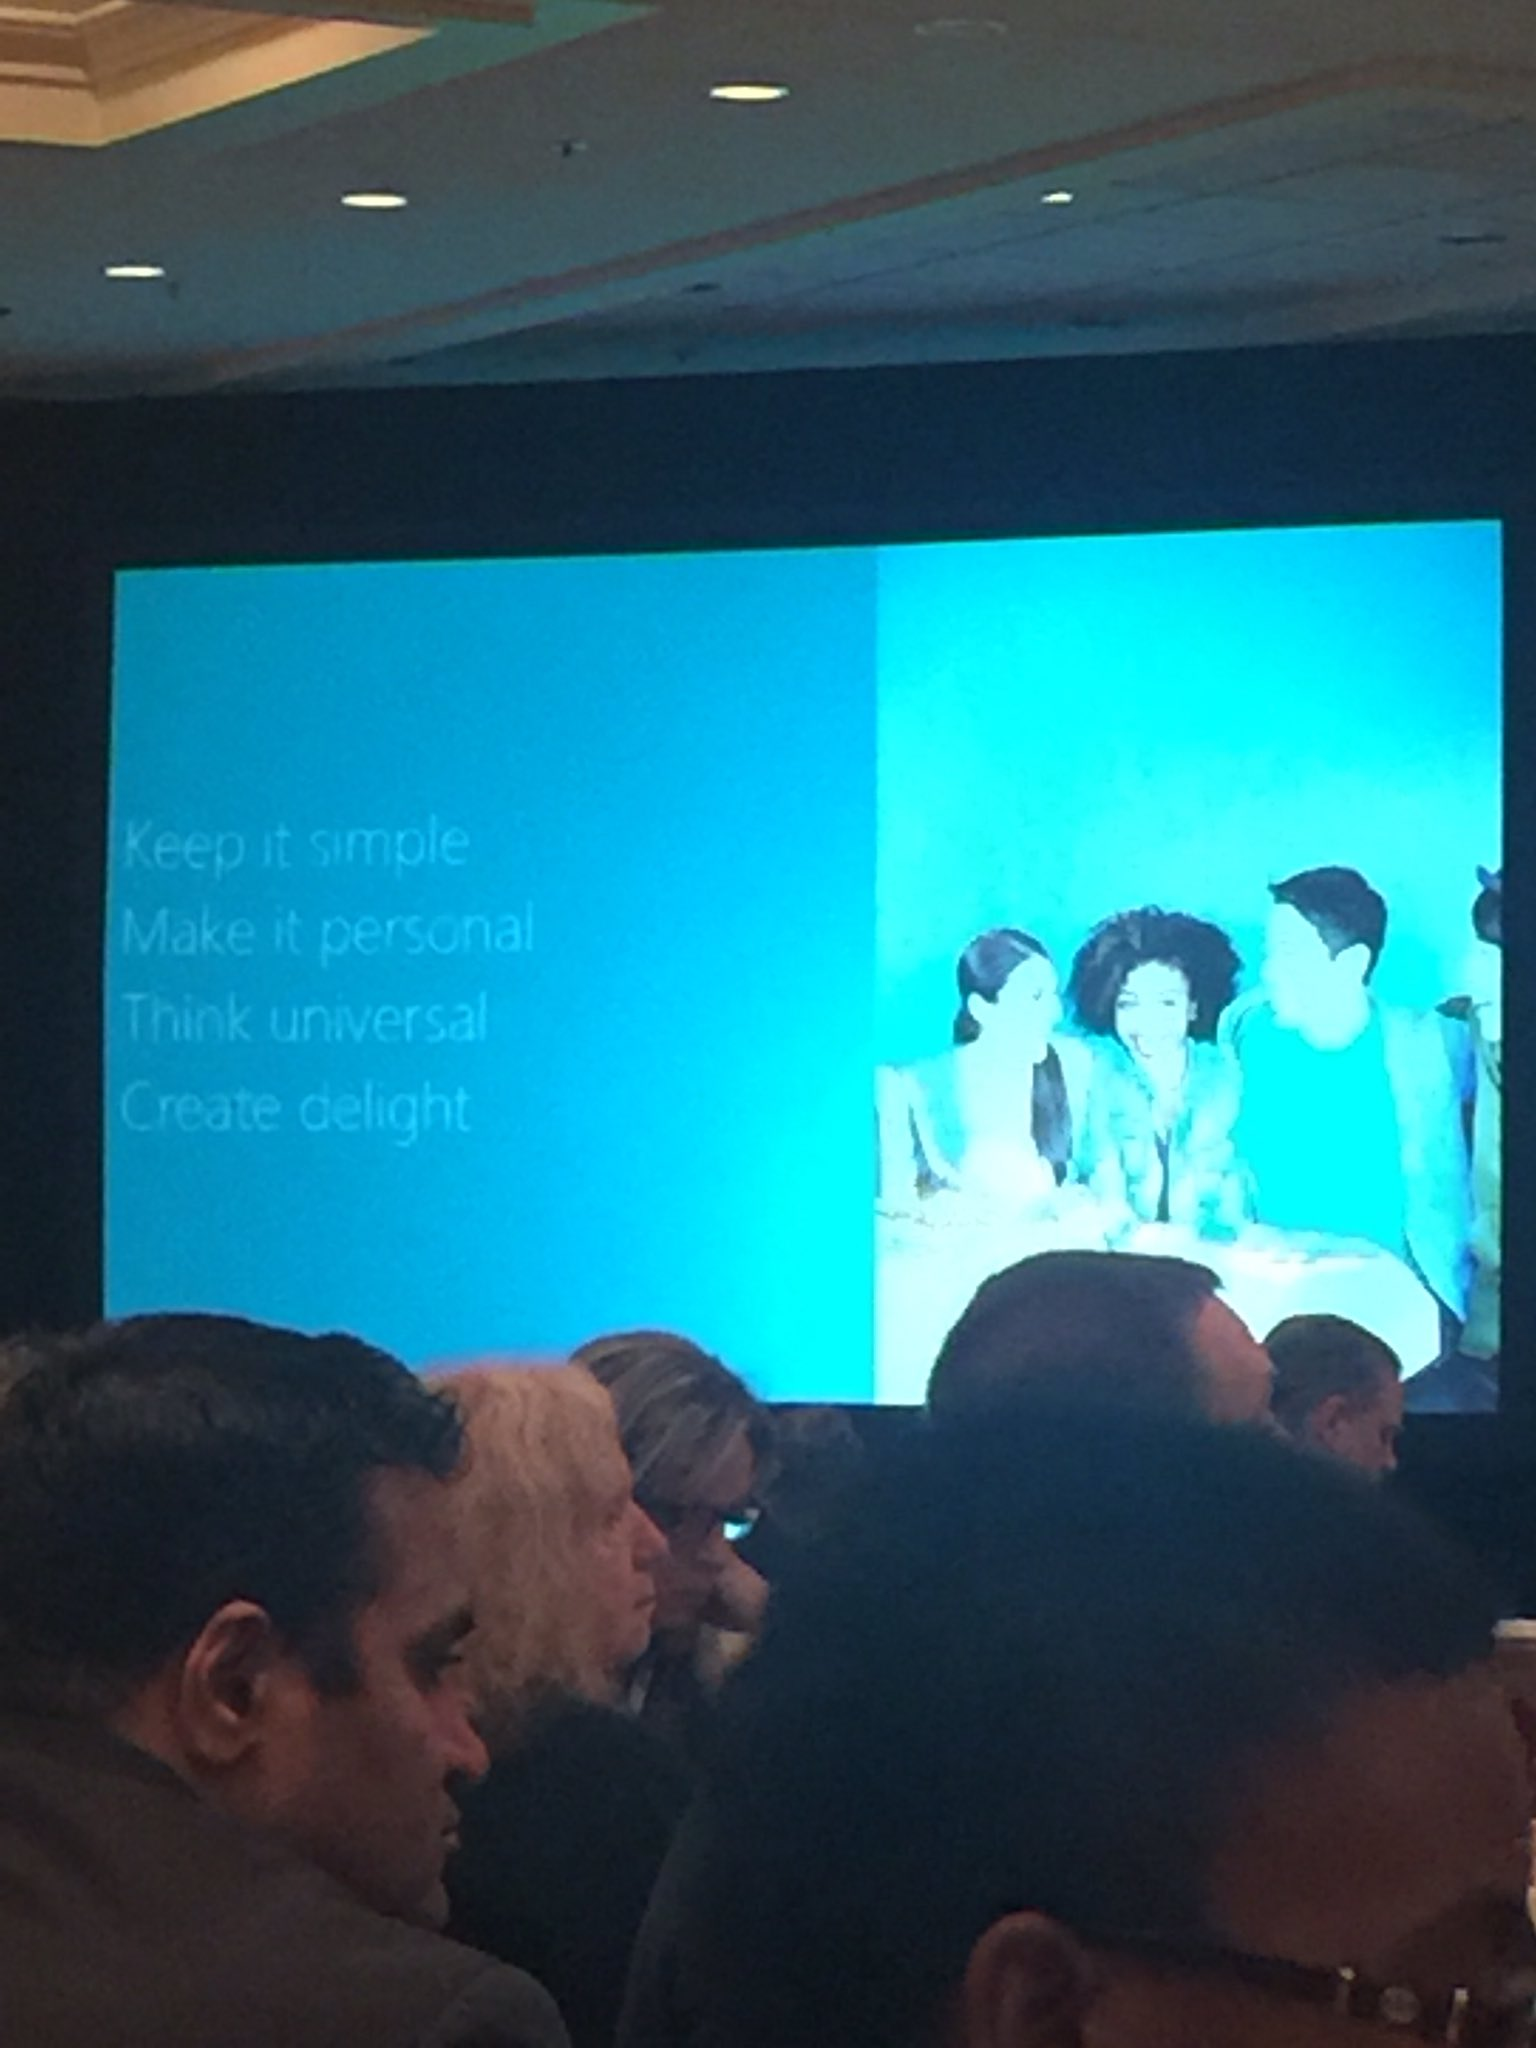 A treat to be hearing from a senior @Microsoft designer on UX at #LSCTIG https://t.co/QNnDOc4ewl